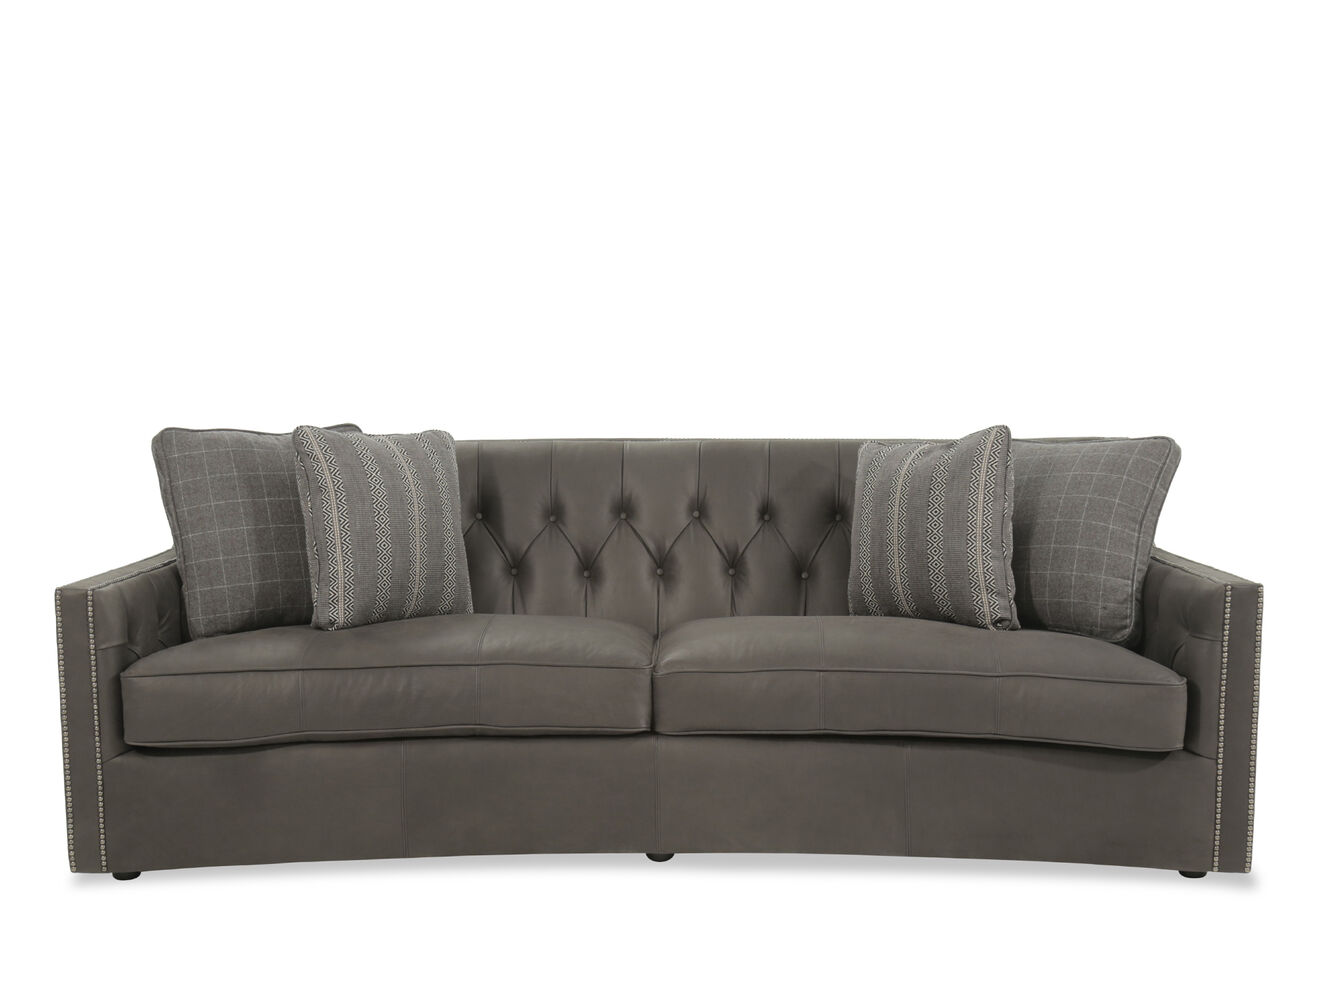 button tufted leather 96 sofa in gray mathis brothers furniture. Black Bedroom Furniture Sets. Home Design Ideas